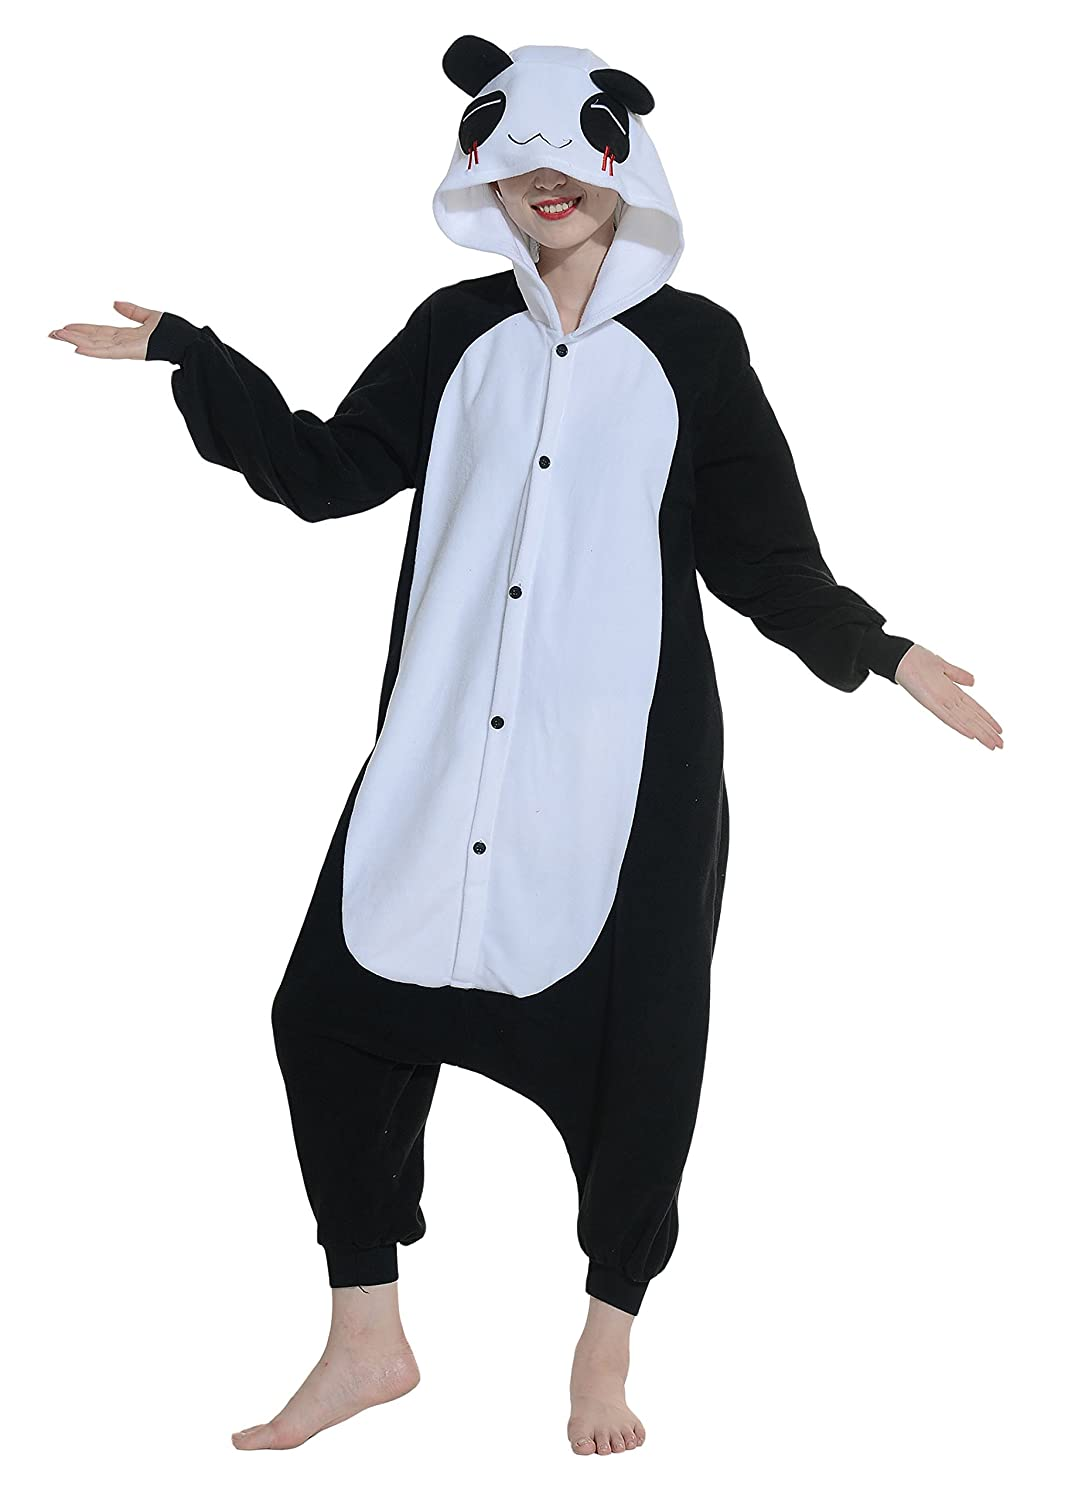 Fandecie Unisex Adult Pajamas Kigurumi Costume Anime Animal Cosplay Onesies Halloween Sleepwear Fancy Dress Panda Suitable for Height 160-175cm